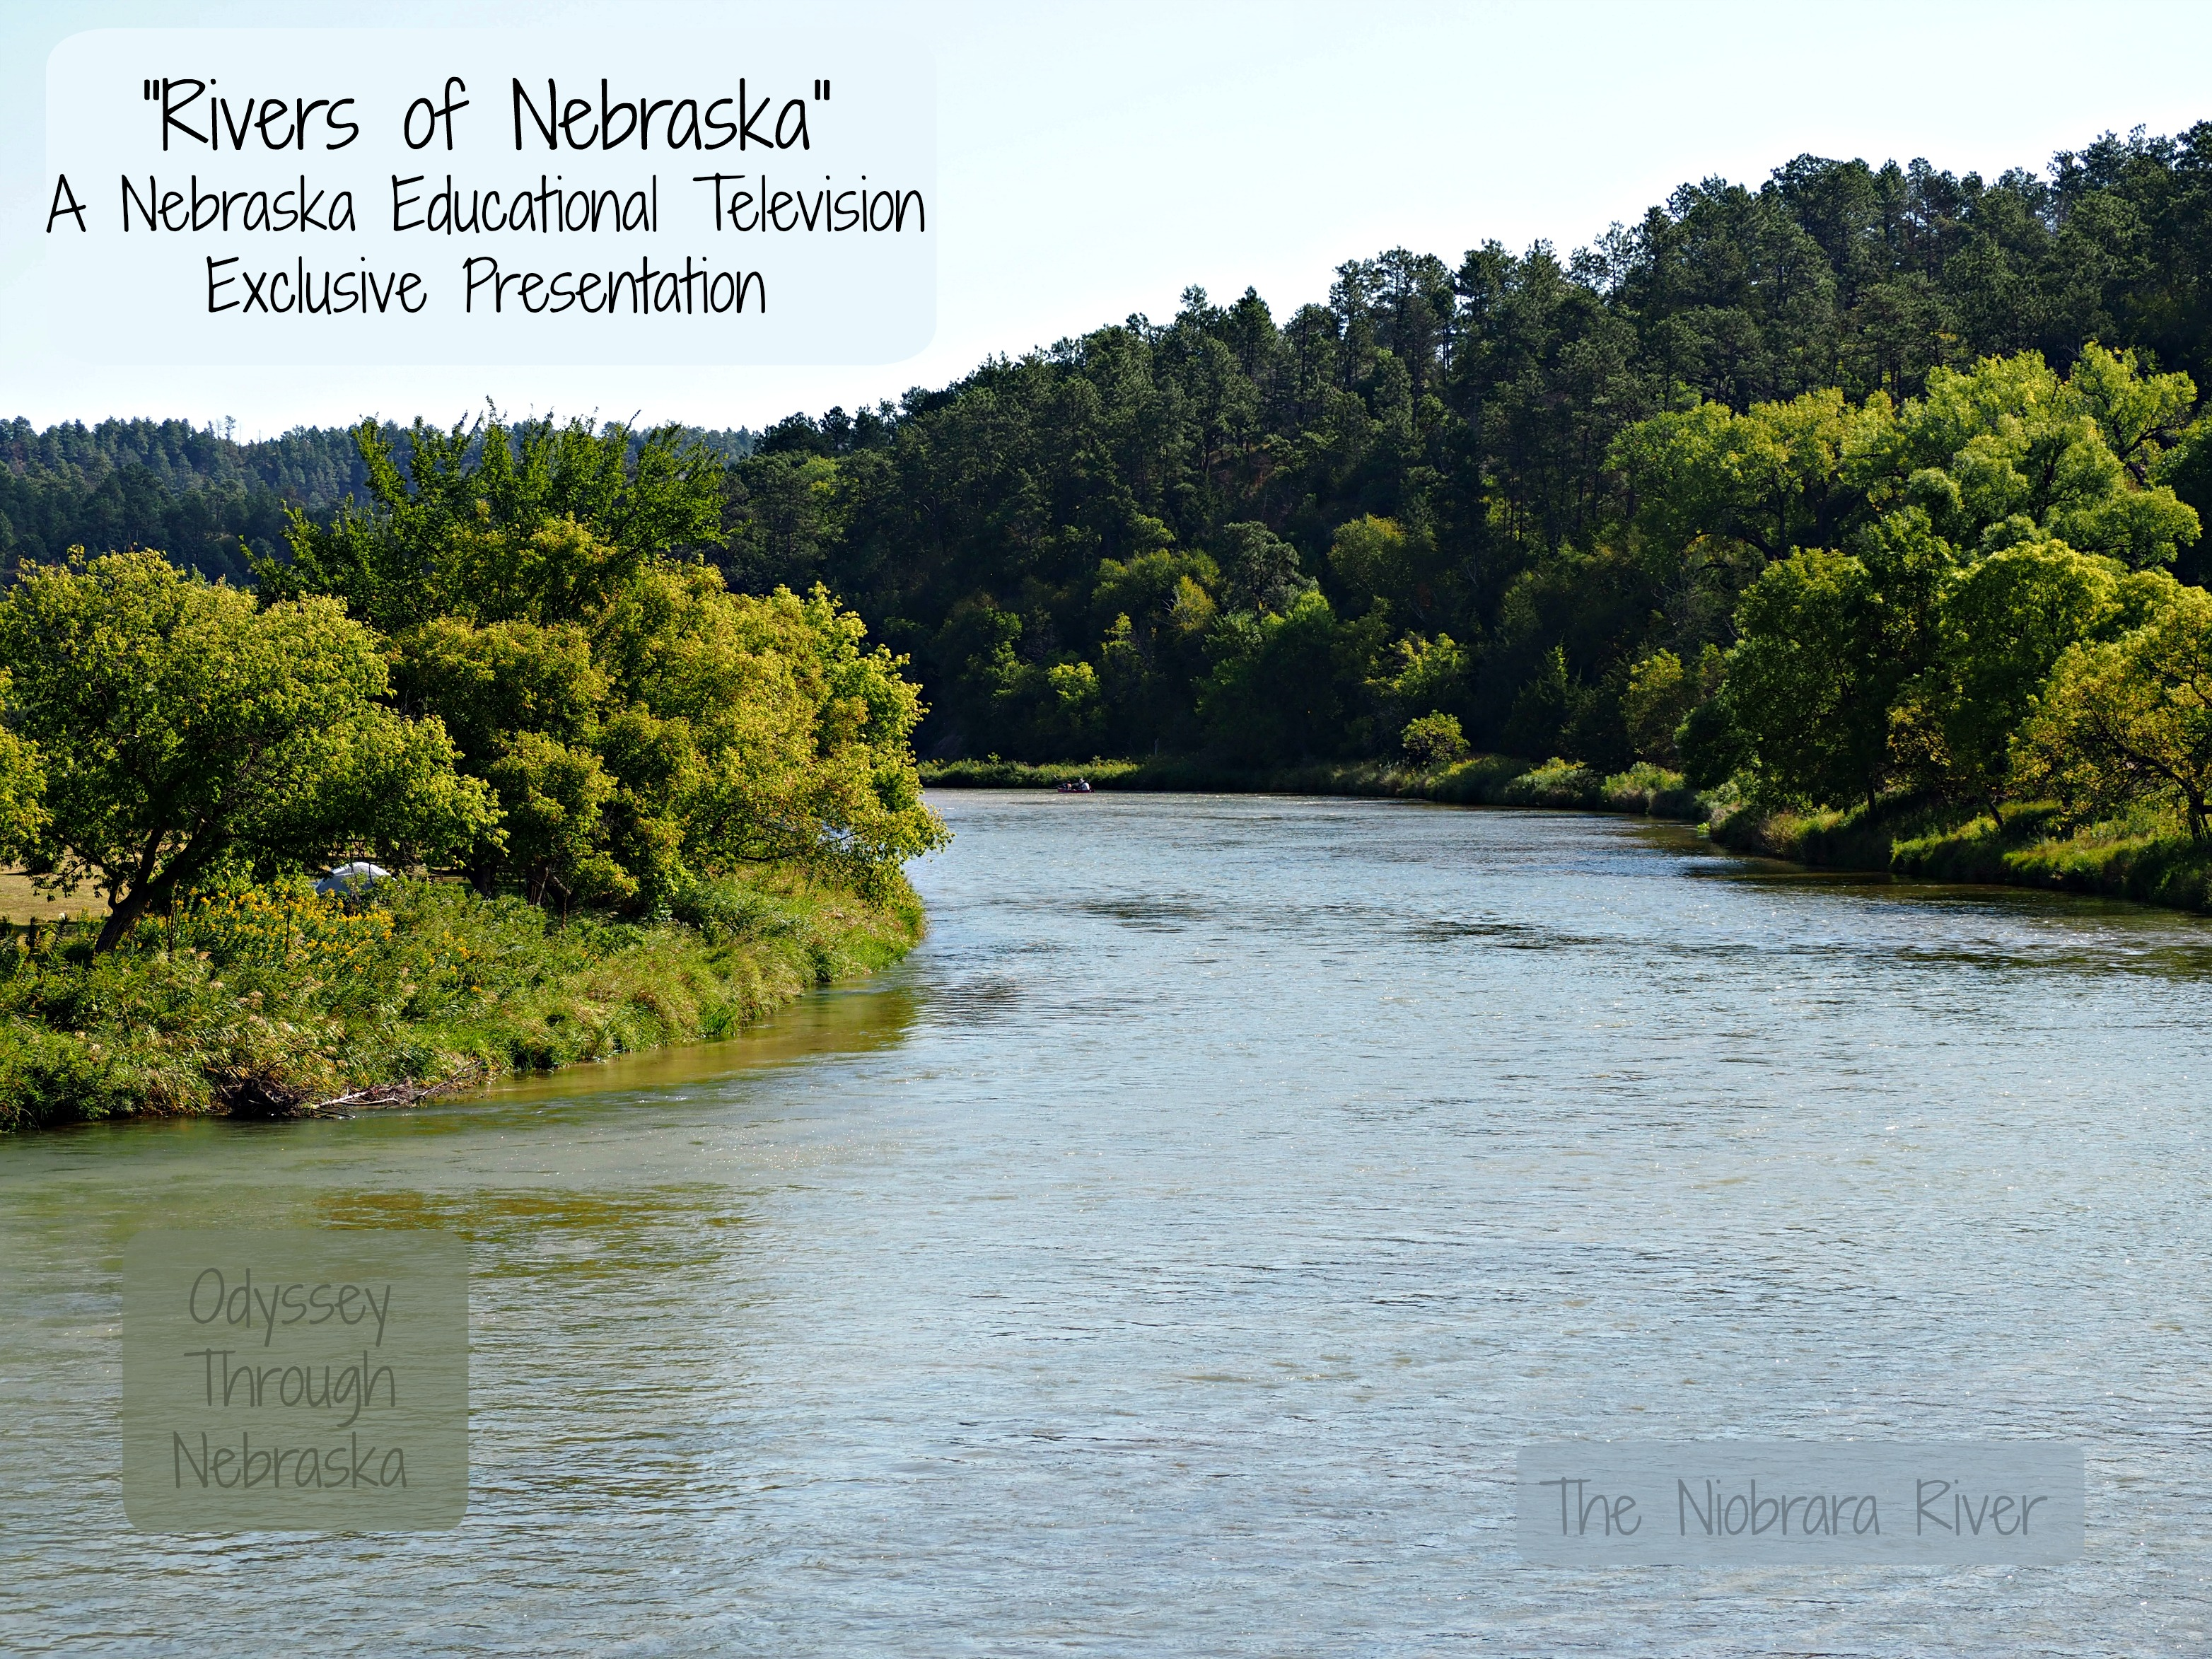 Rivers of Nebraska